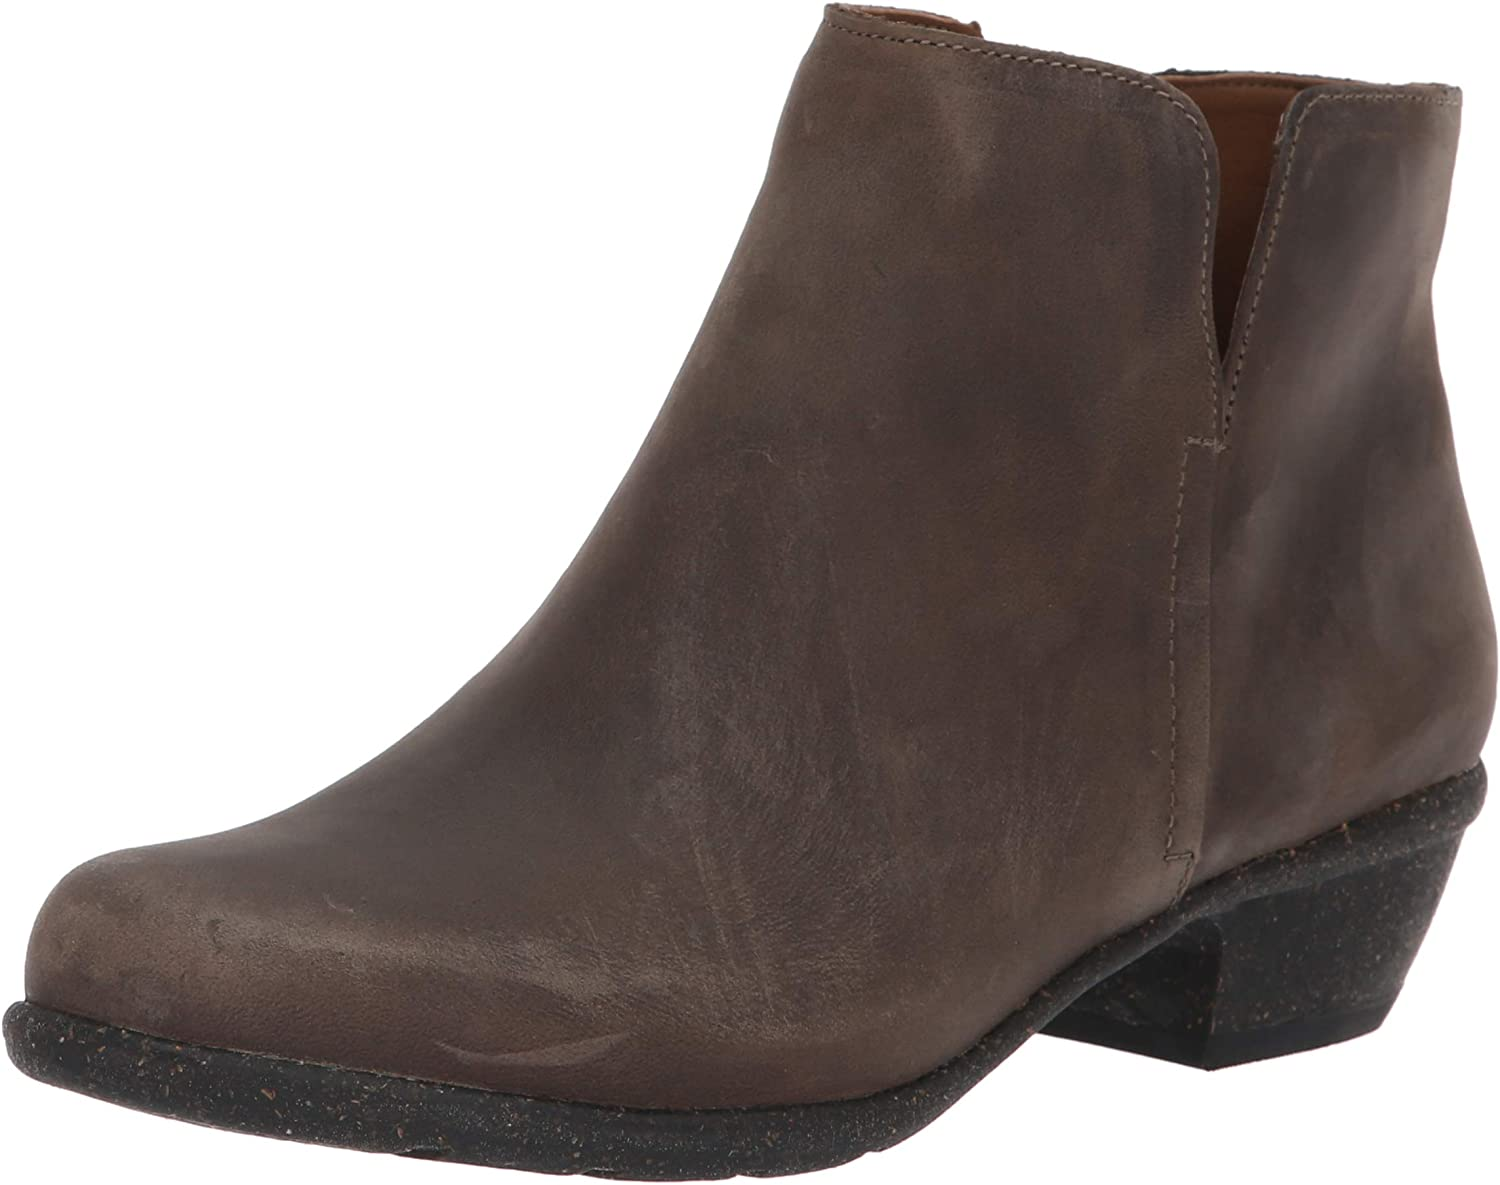 CLARKS Women's Wilpink Frost Taupe Oiled Leather 7 D US